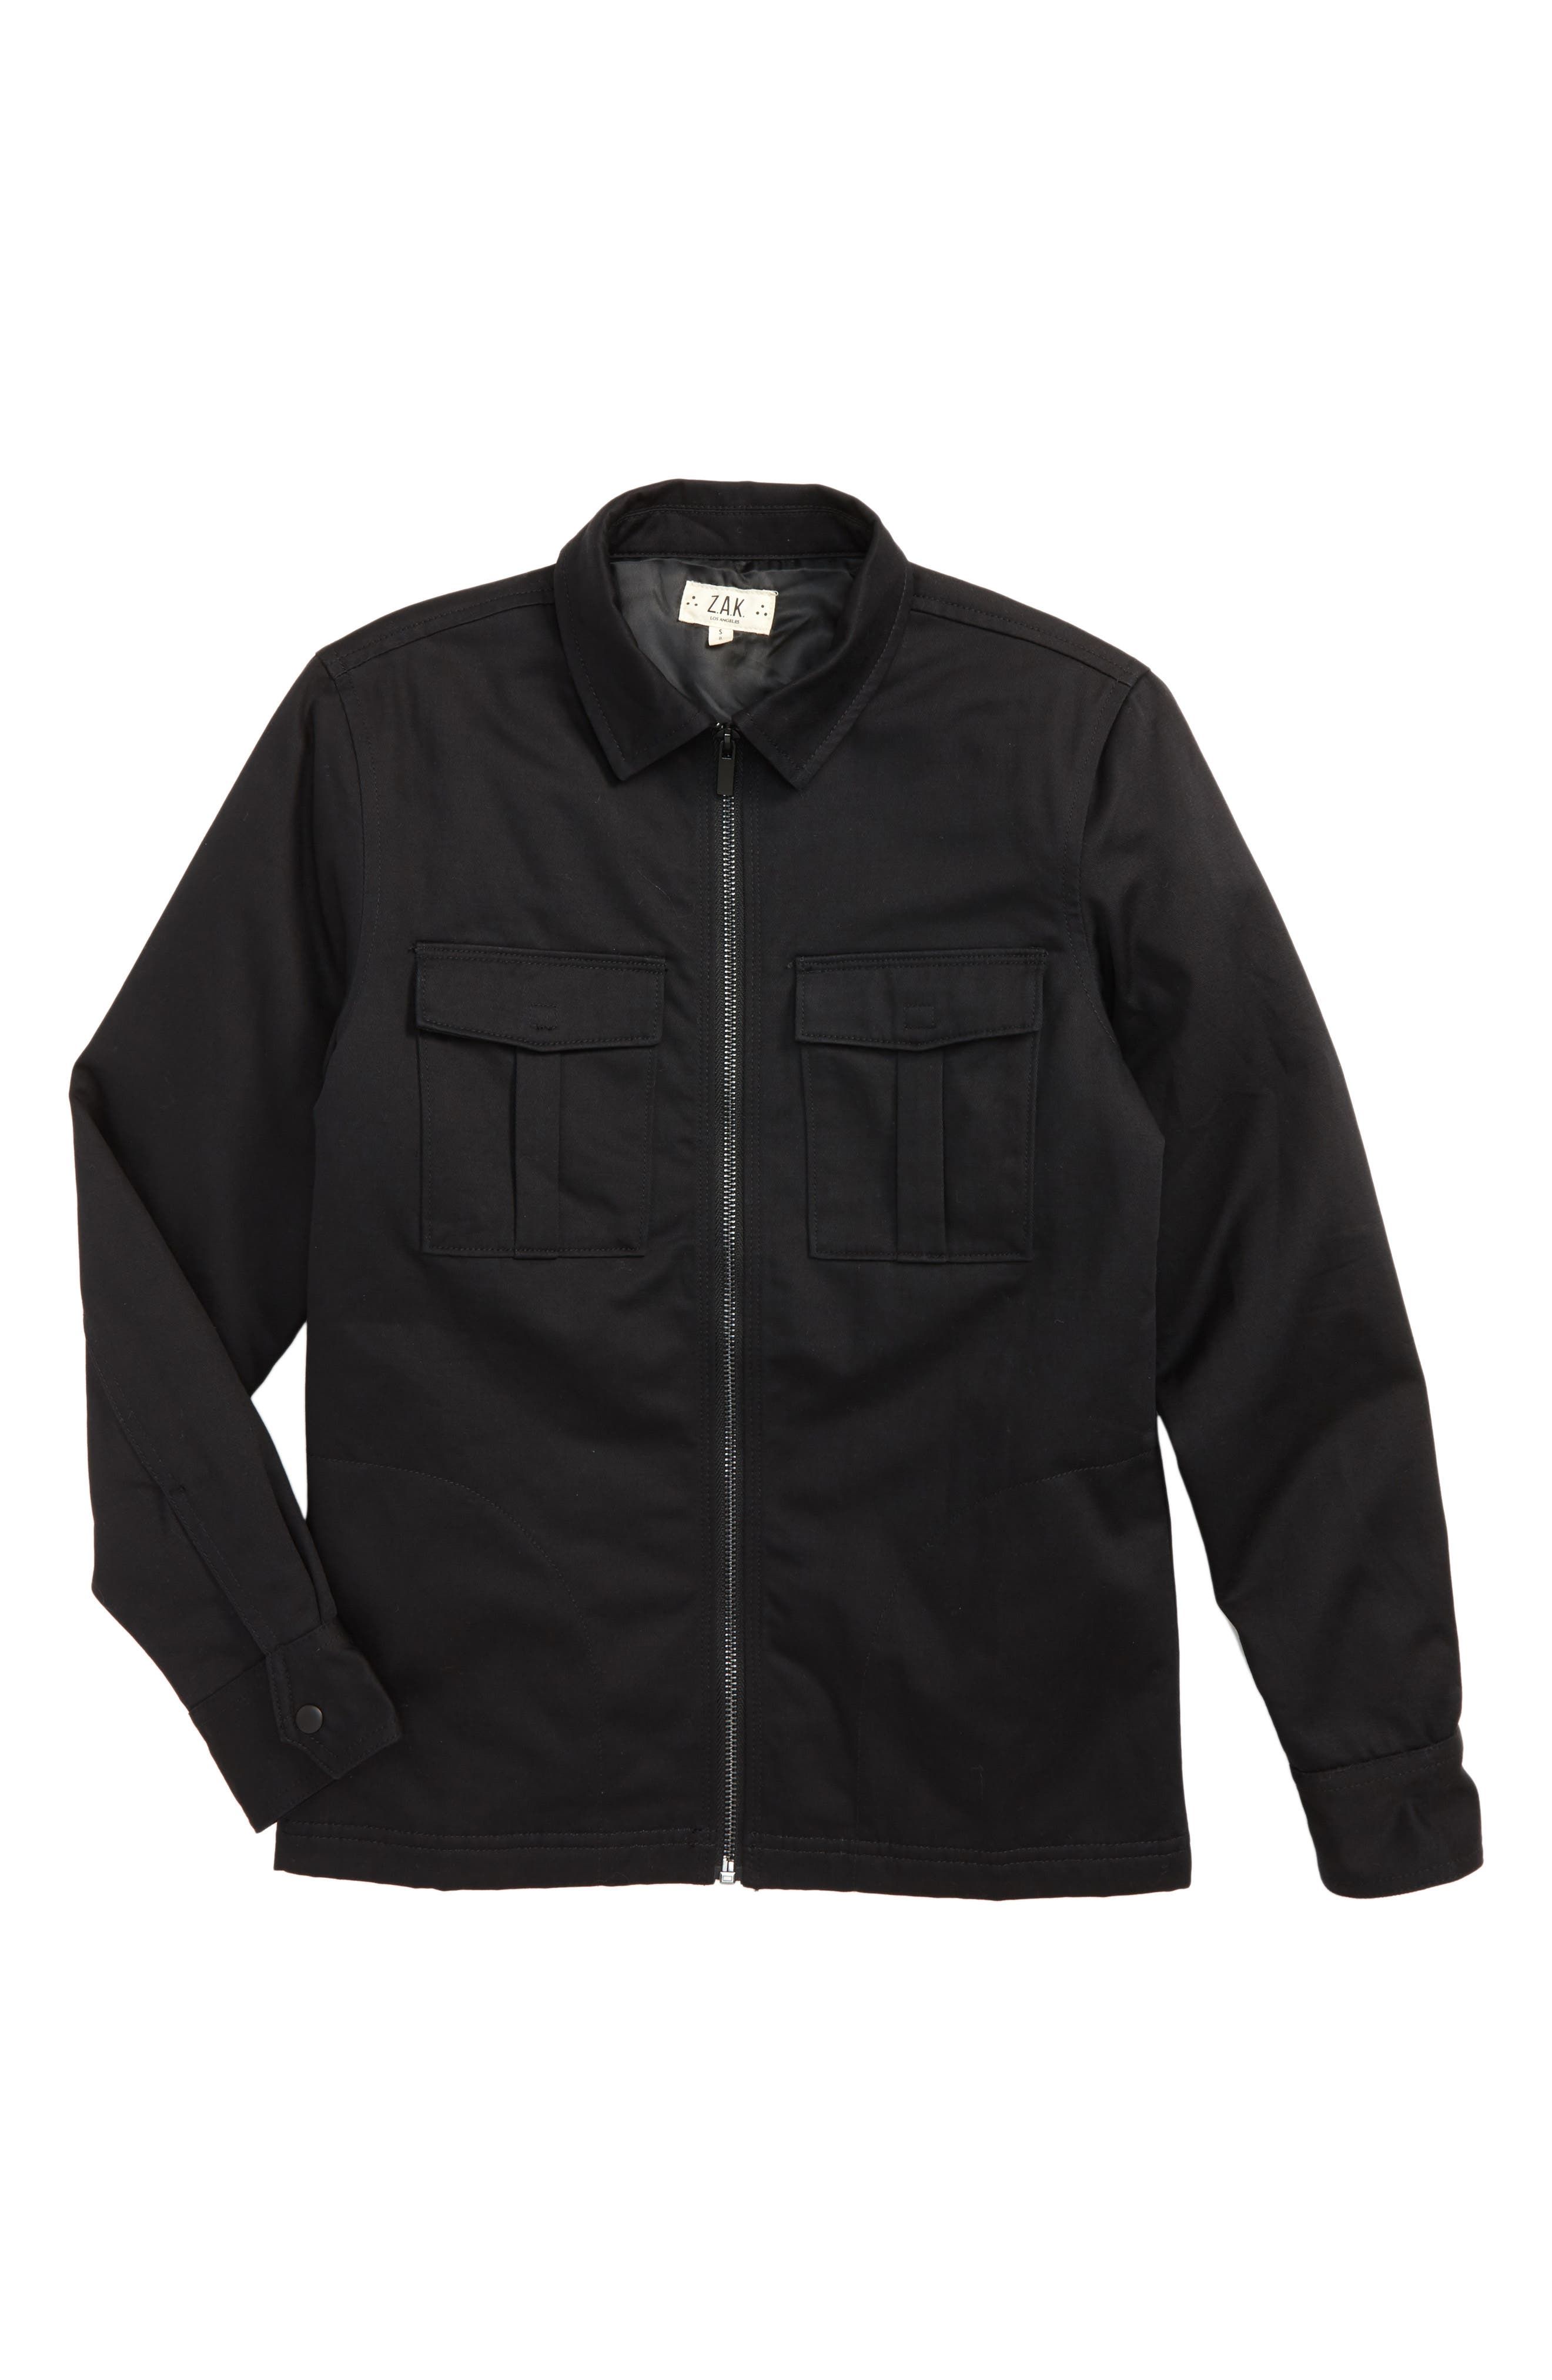 Lost Angeles Jacket,                             Main thumbnail 1, color,                             Black